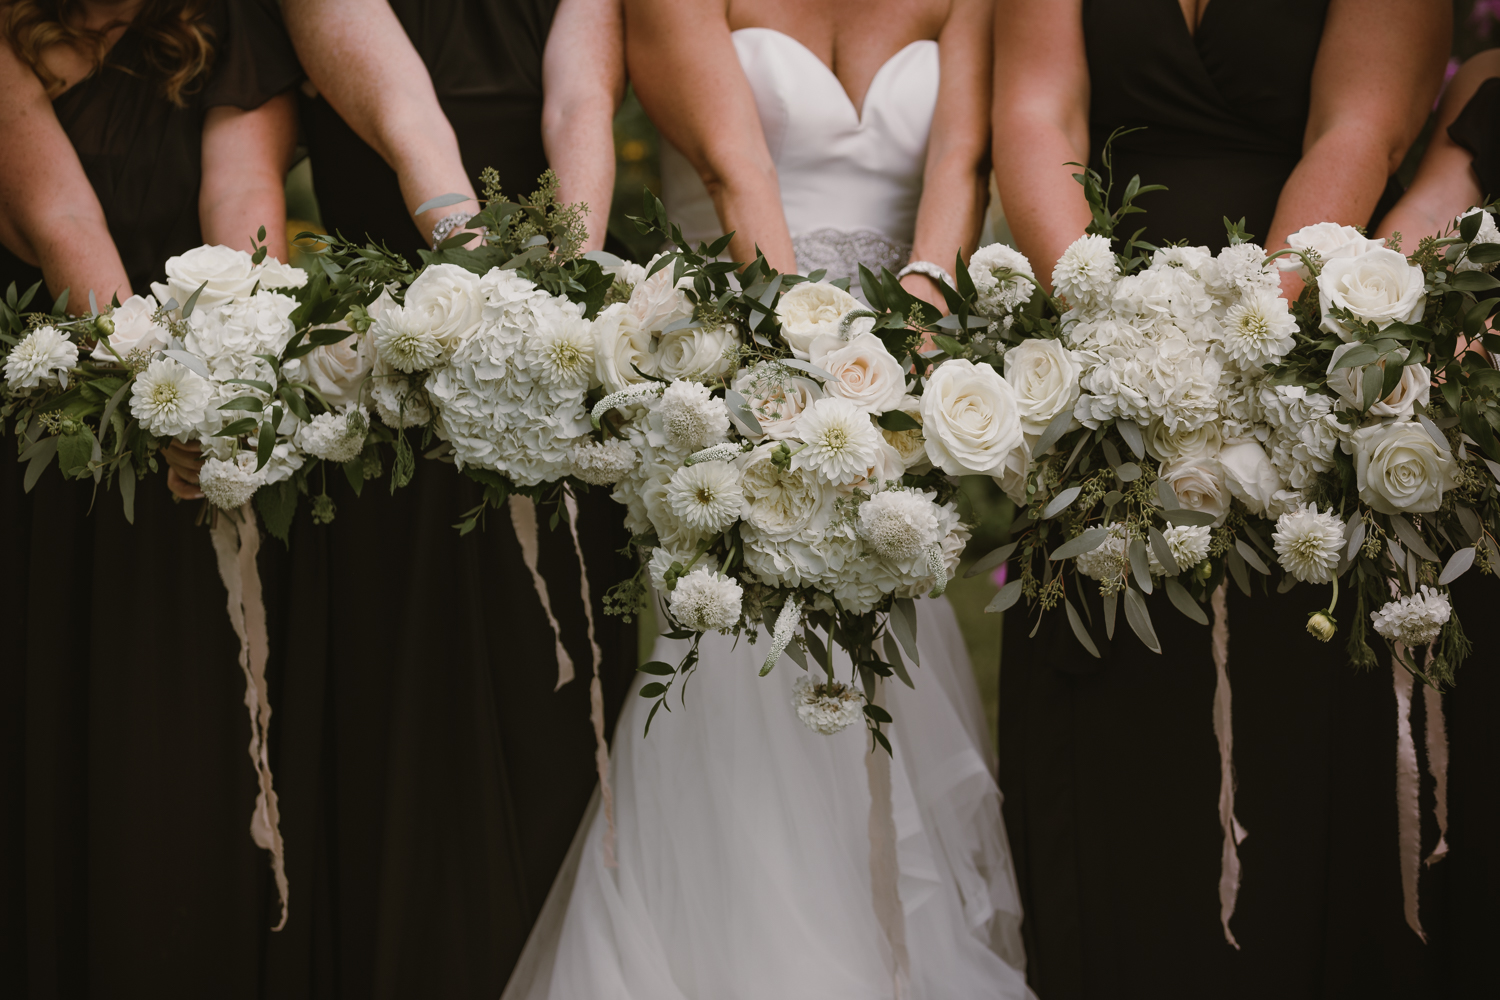 The bouquets of the bride and her bridesmaids